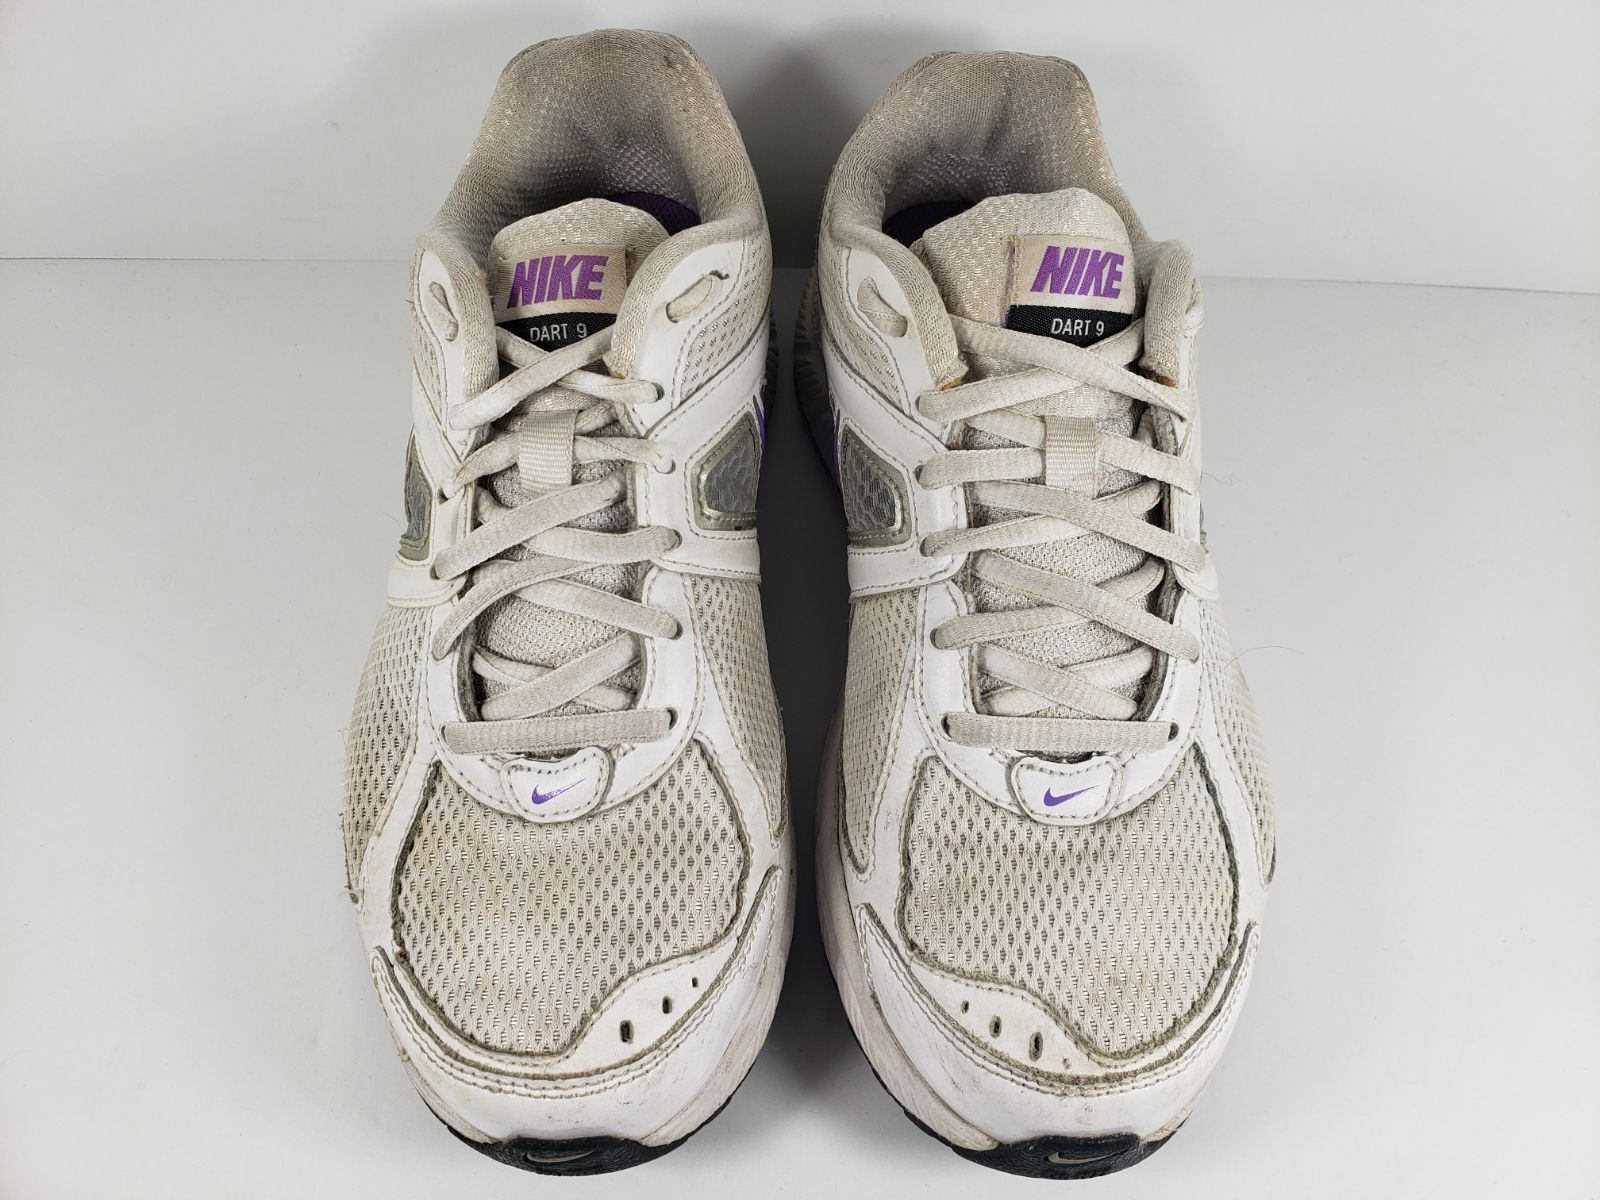 giro Excelente regional  Nike Dart 9 Running Shoes 443863-101 Women's Size 7.5 White & Purple.  Condition is Pre-owned. Please review all pictures for an accura… | Running  shoes, Shoes, Nike